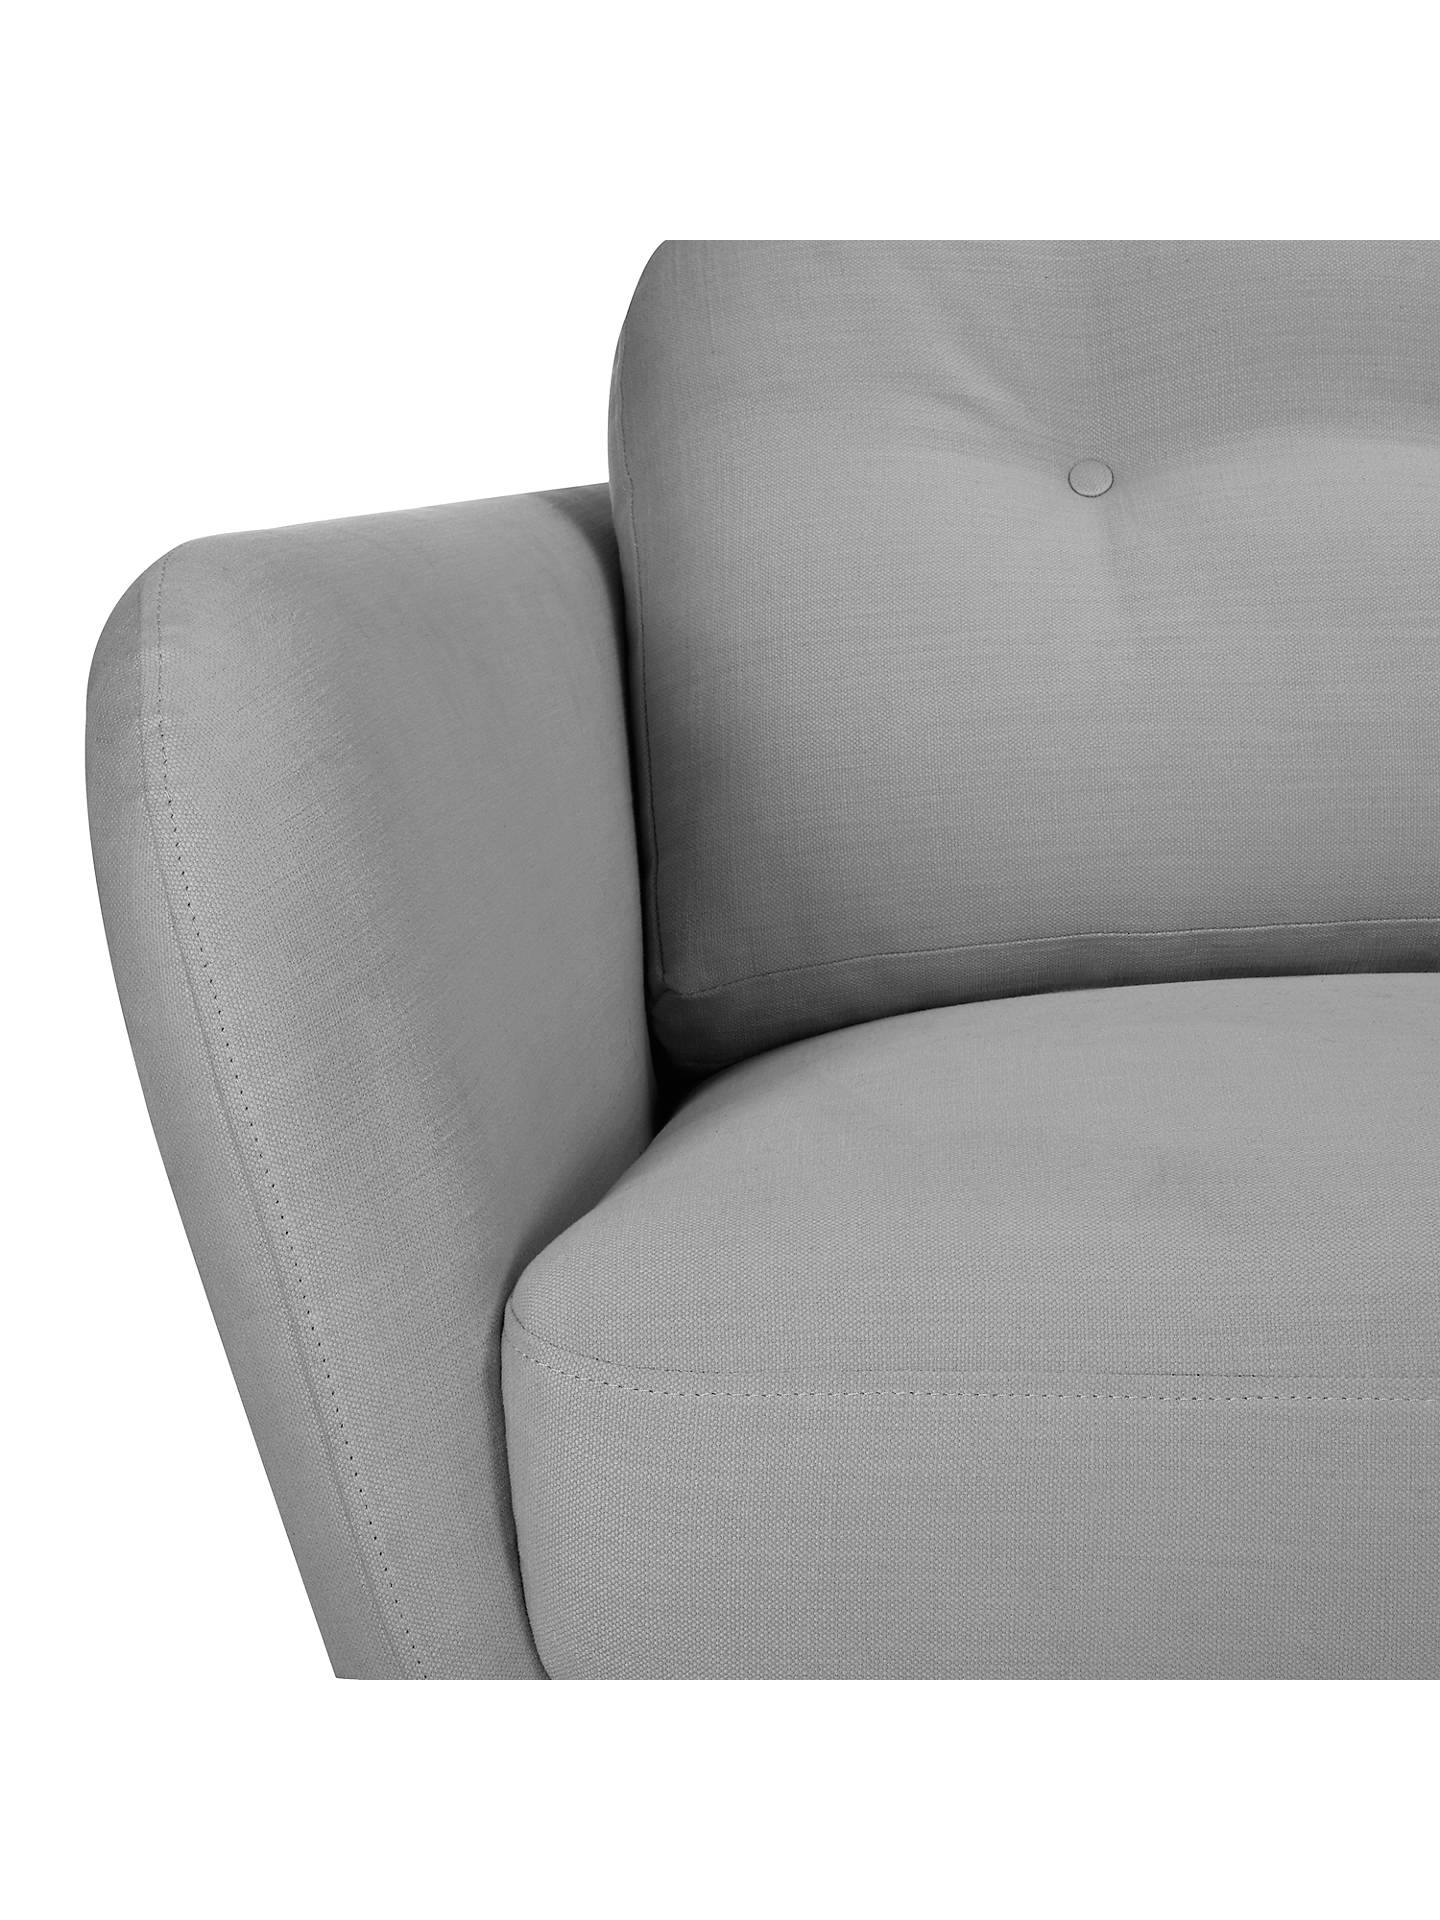 BuyHouse by John Lewis Arlo Armchair, Dylan Charcoal Online at johnlewis.com